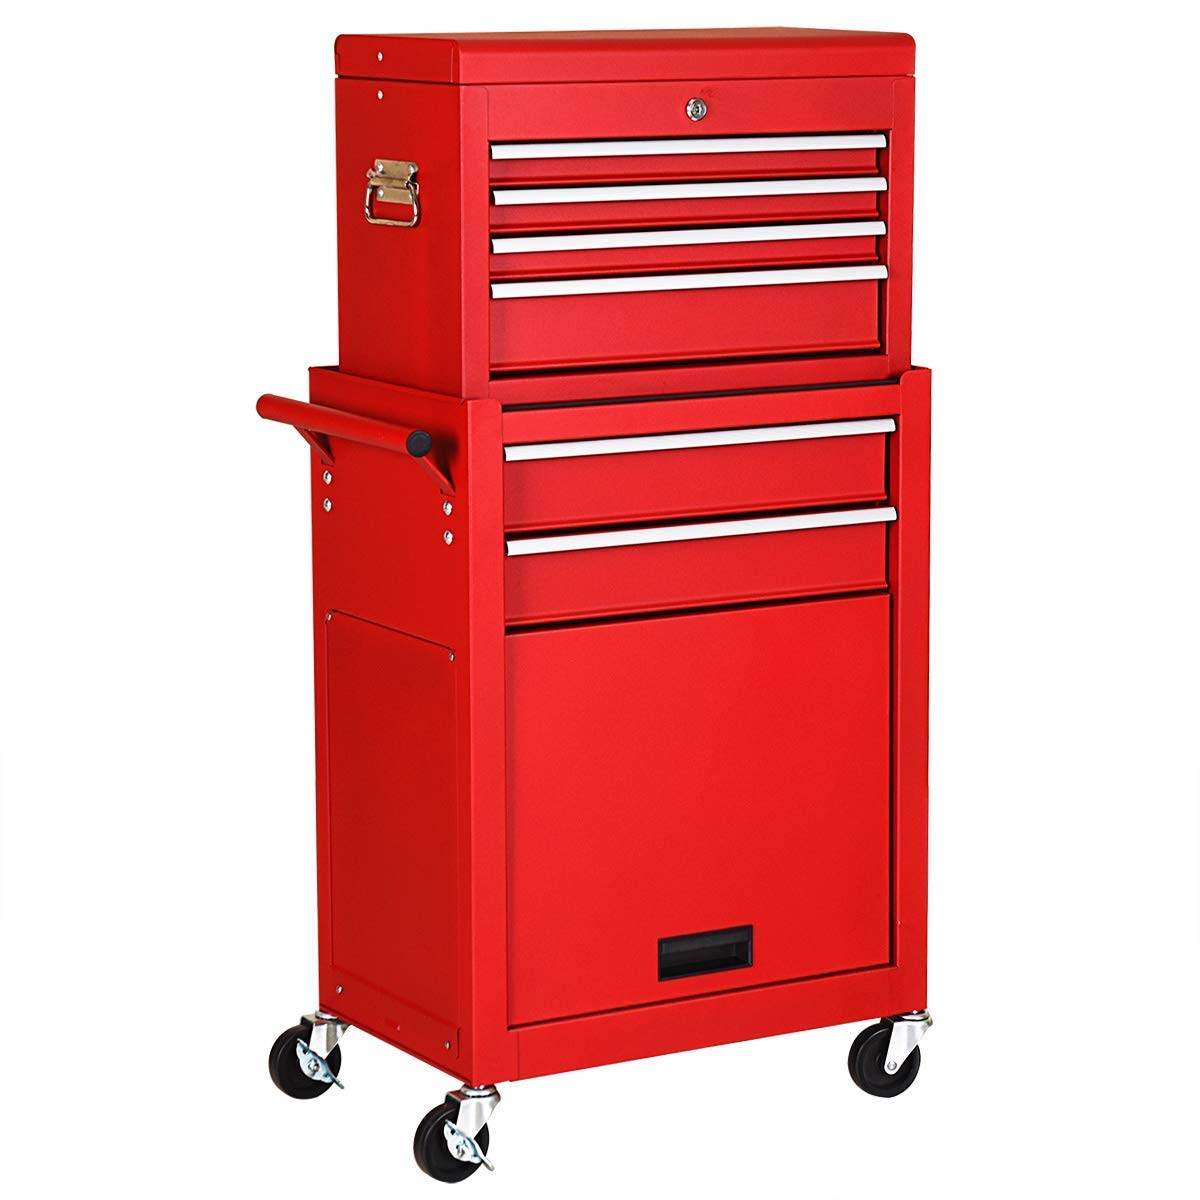 CACACO Portable Top Chest Rolling Tool Box Storage Cabinet Sliding Drawers Toolbox